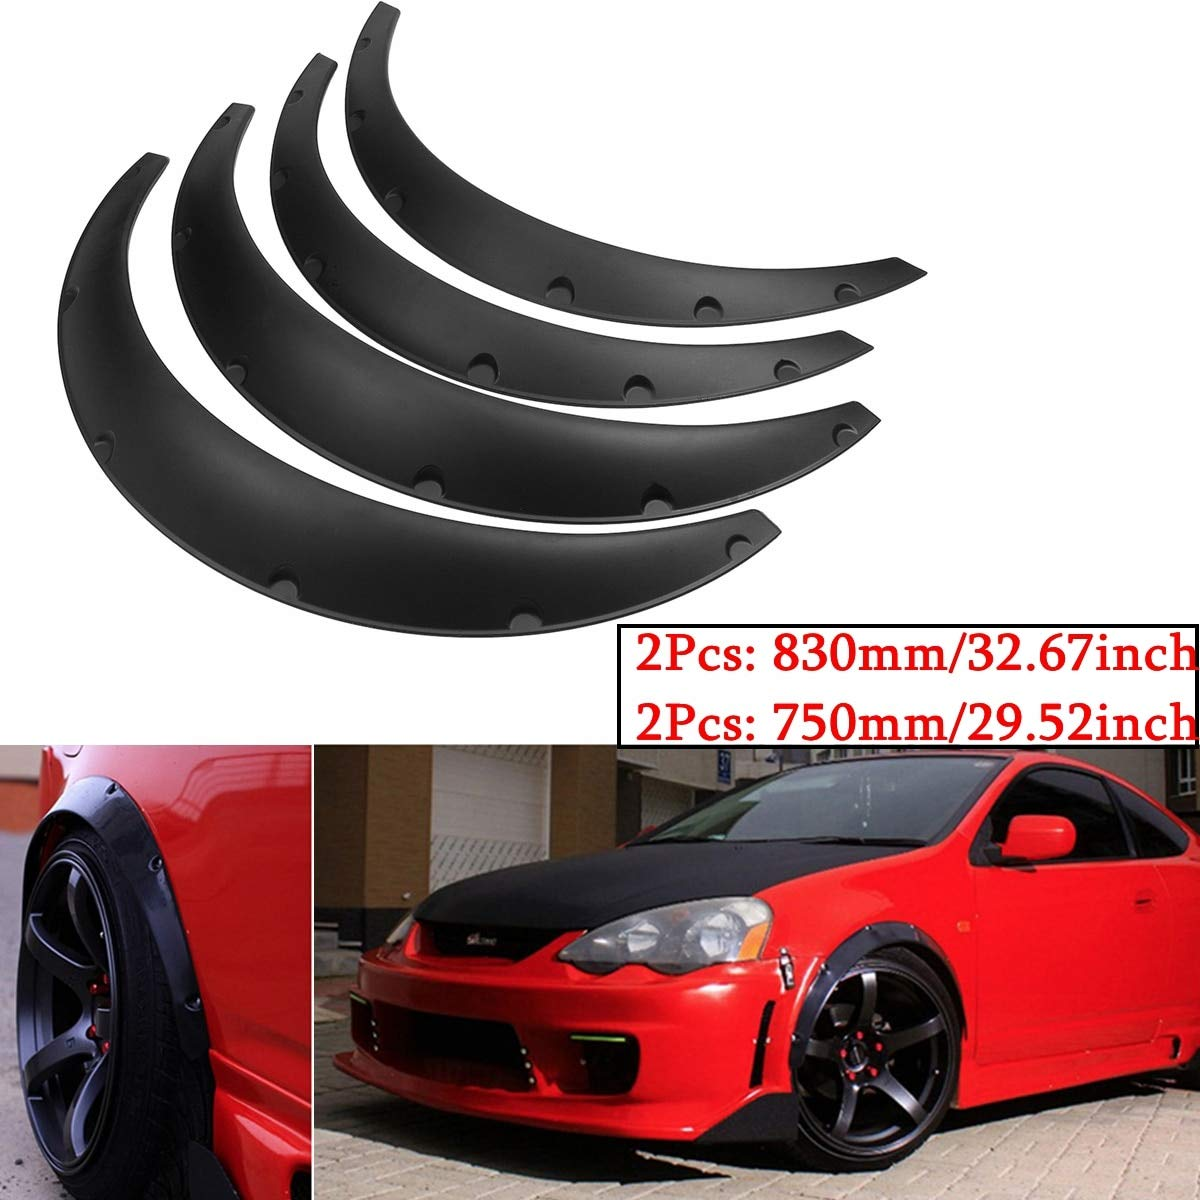 4 Pcs Black Polyurethane Car Pickup Flexible Automobile Exterior Fenders Flares